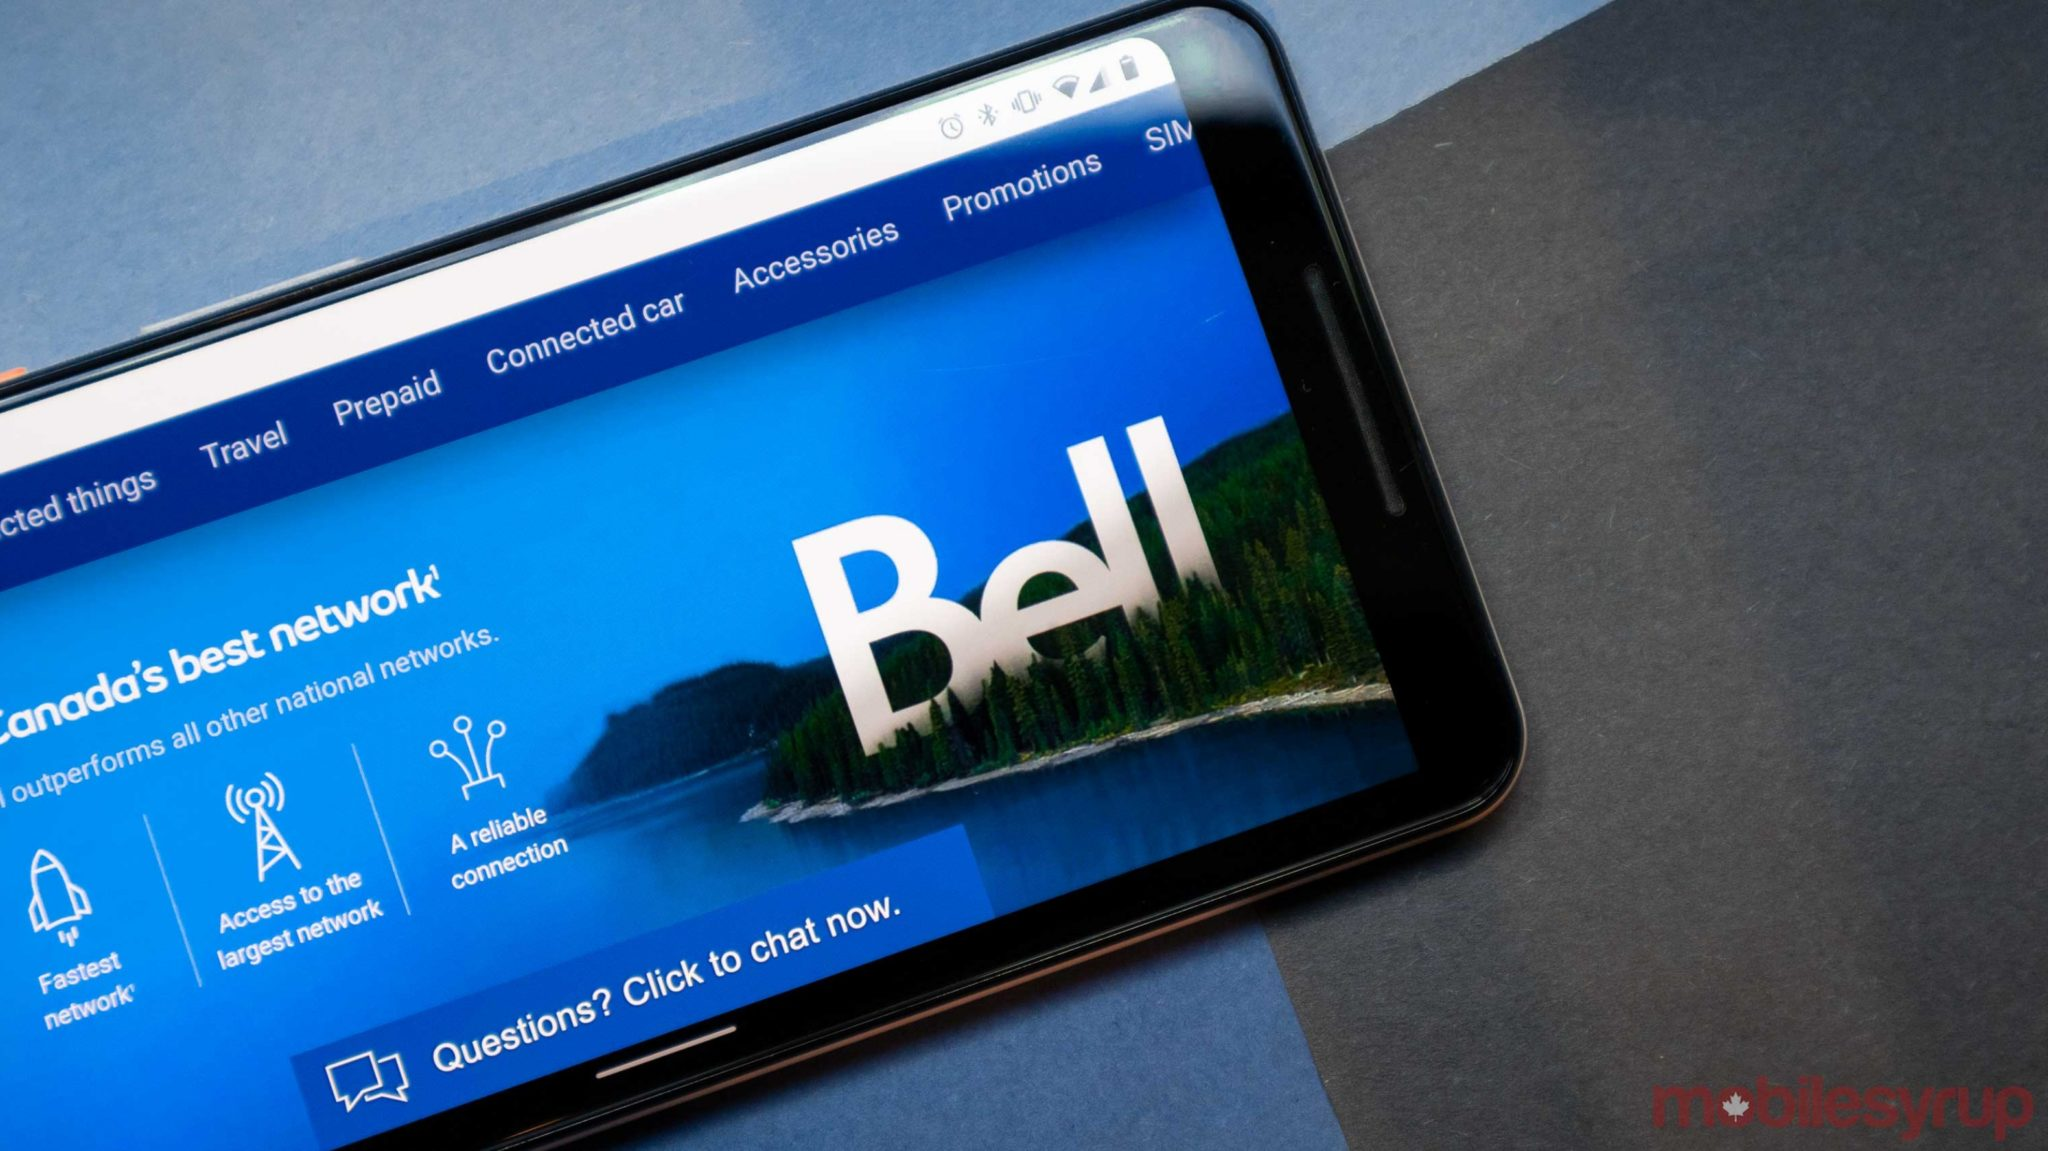 Bell offering $85/30GB promo plan, $105/30GB plan with Canada/U.S. calling